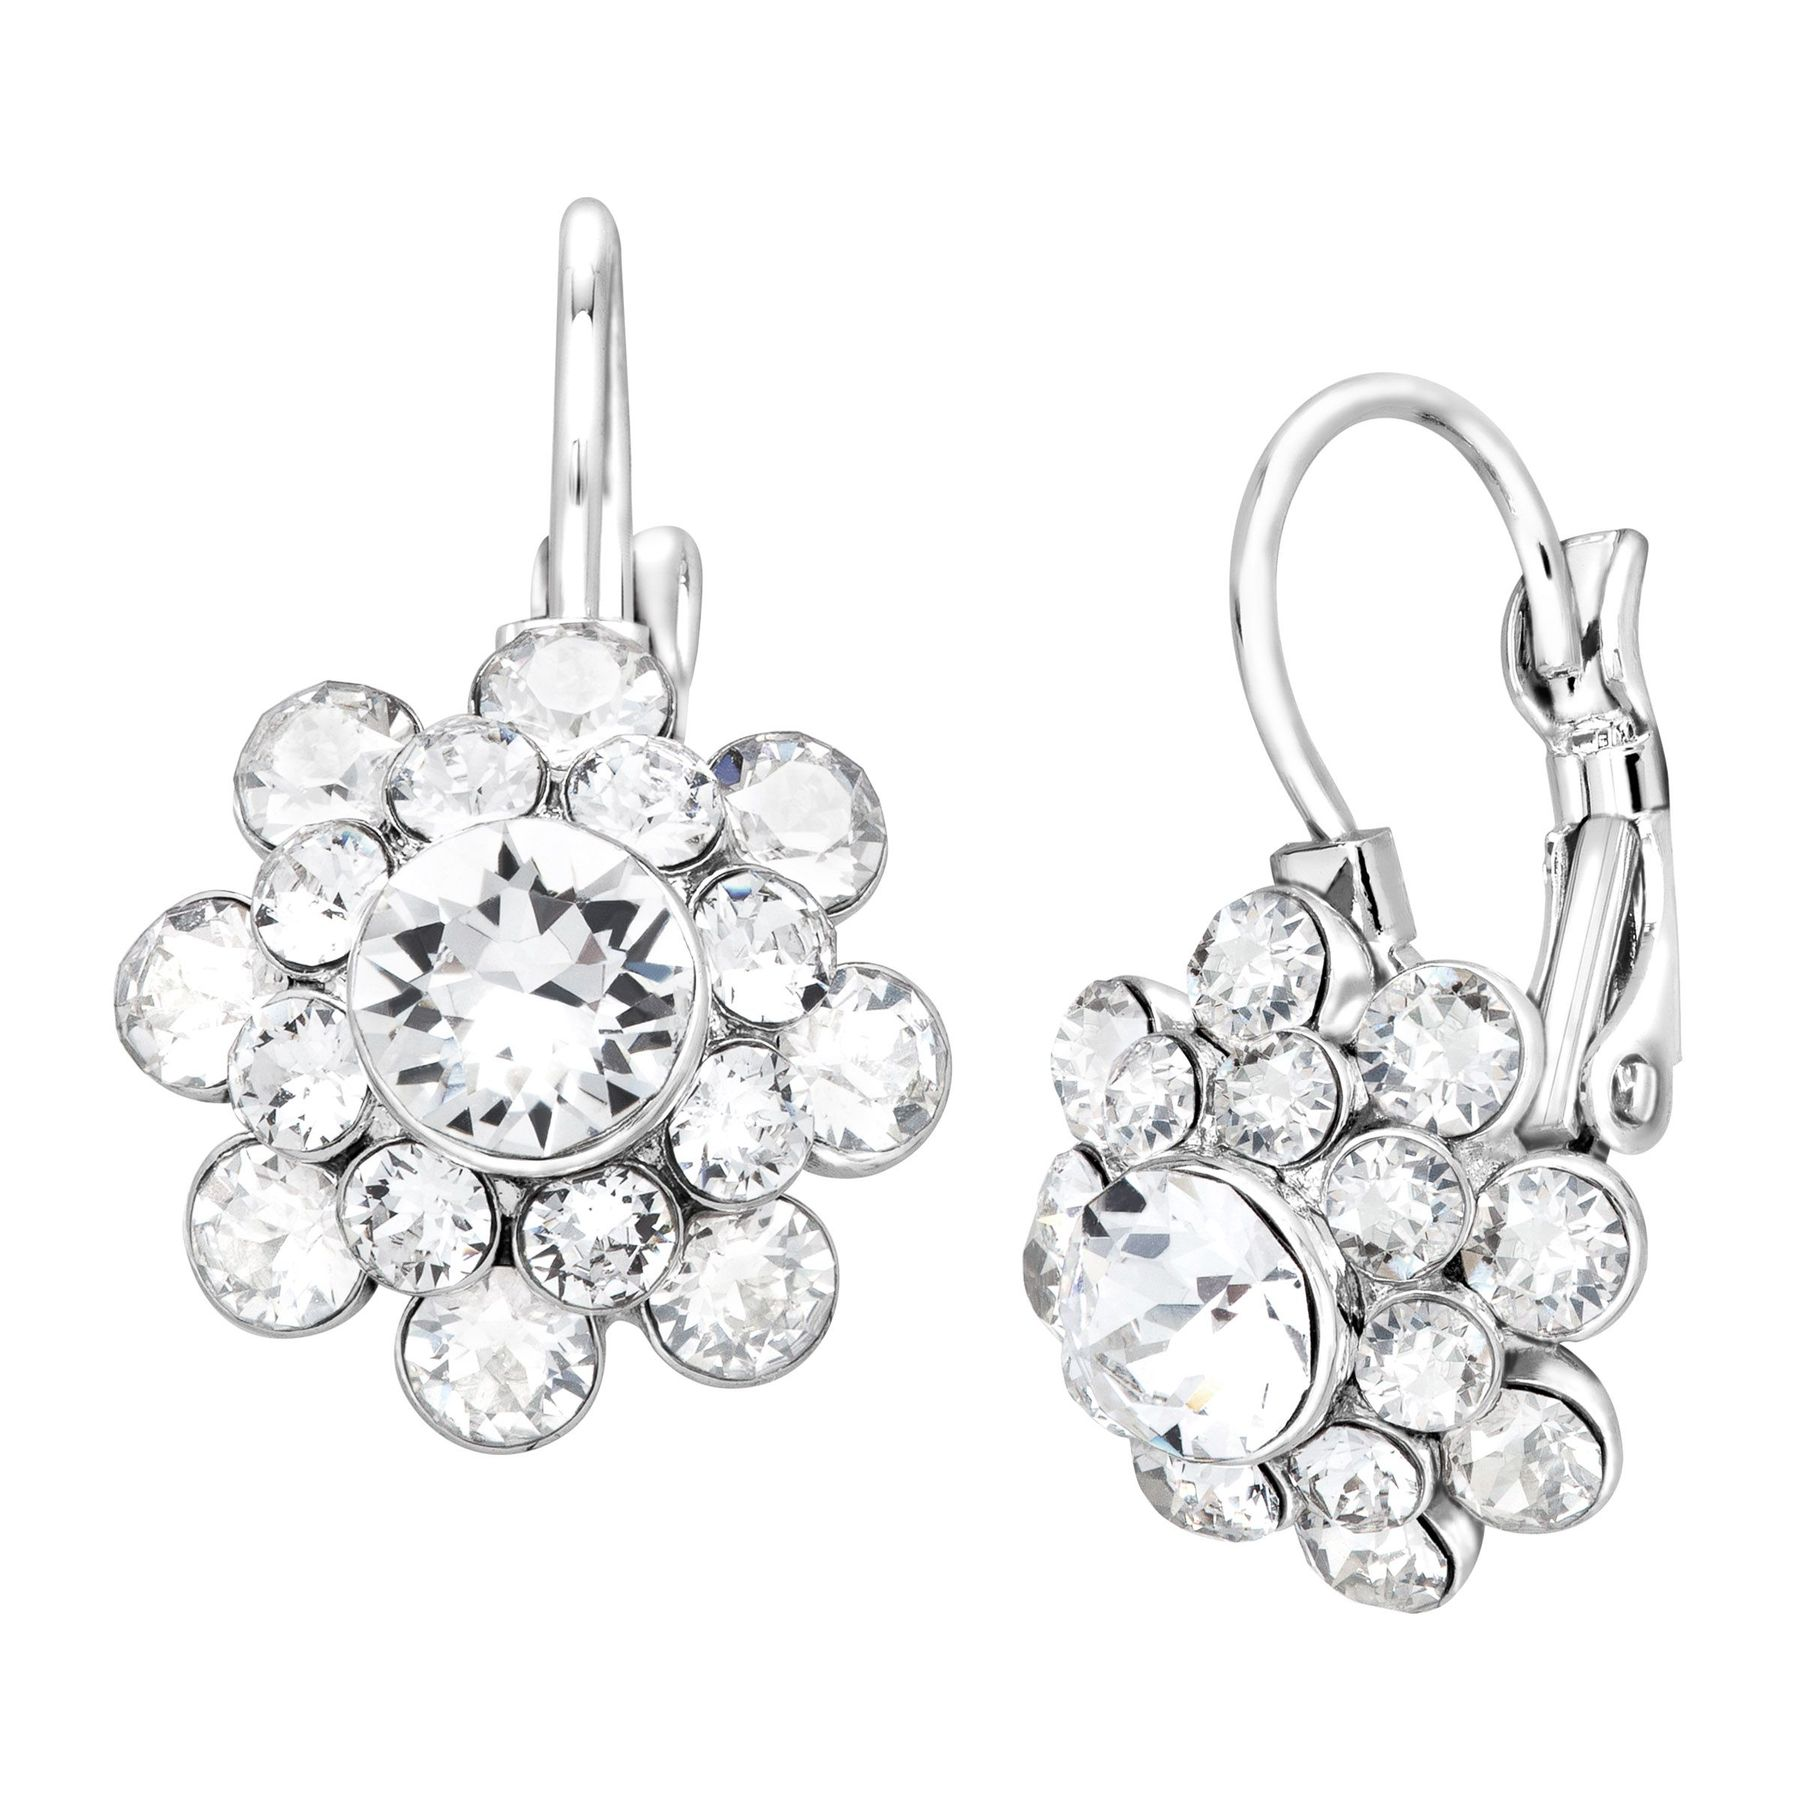 Crystaluxe Flower Drop Earrings with Swarovski Crystals Brass